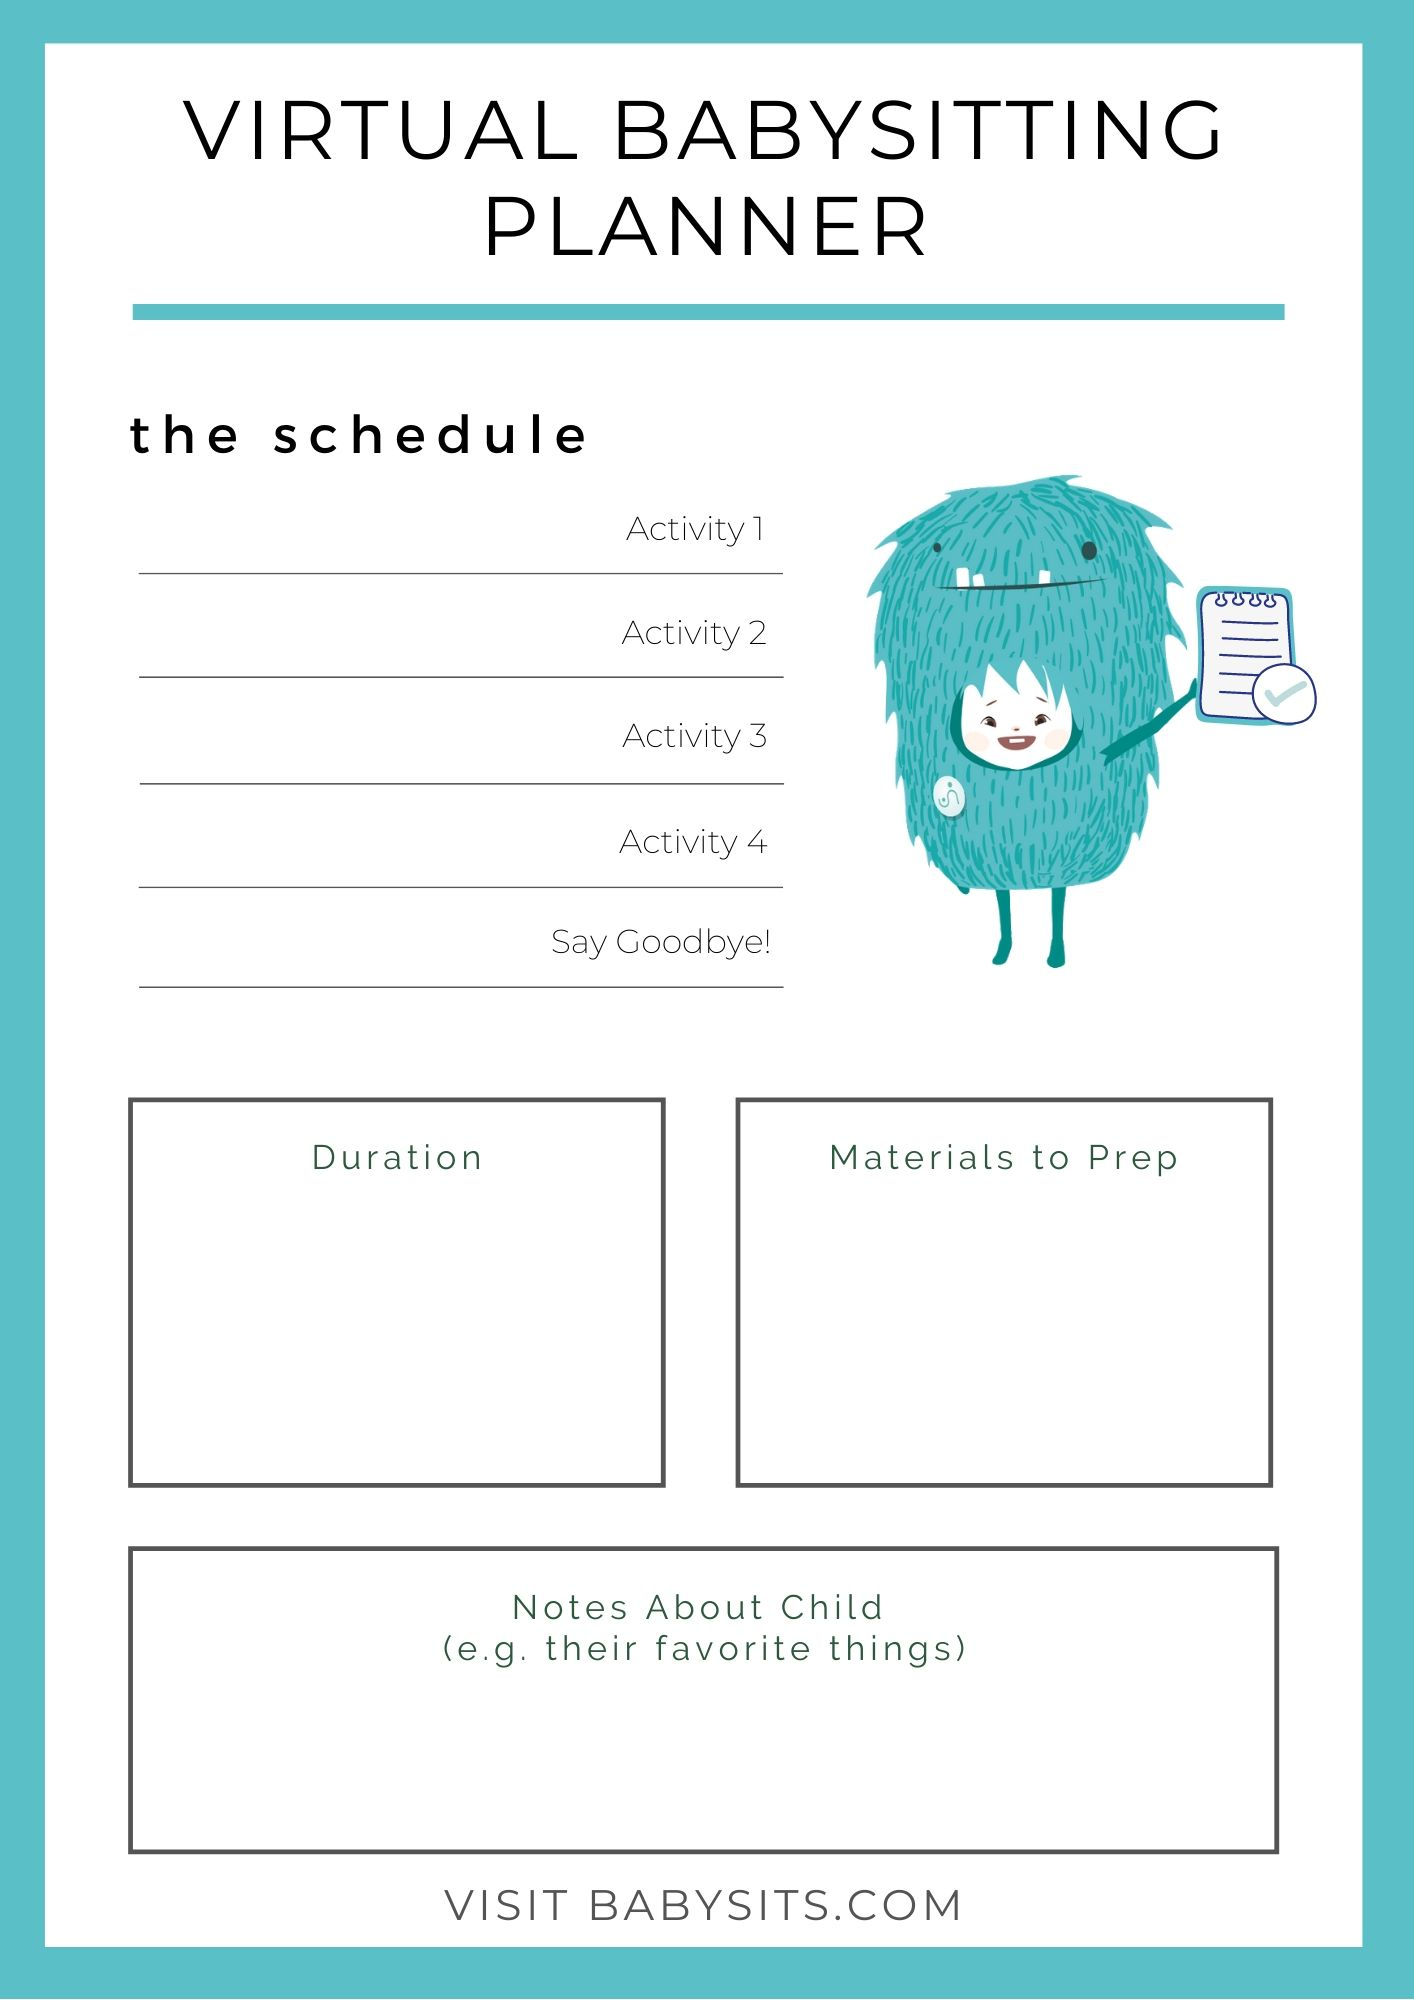 Virtual Babysitting Planner